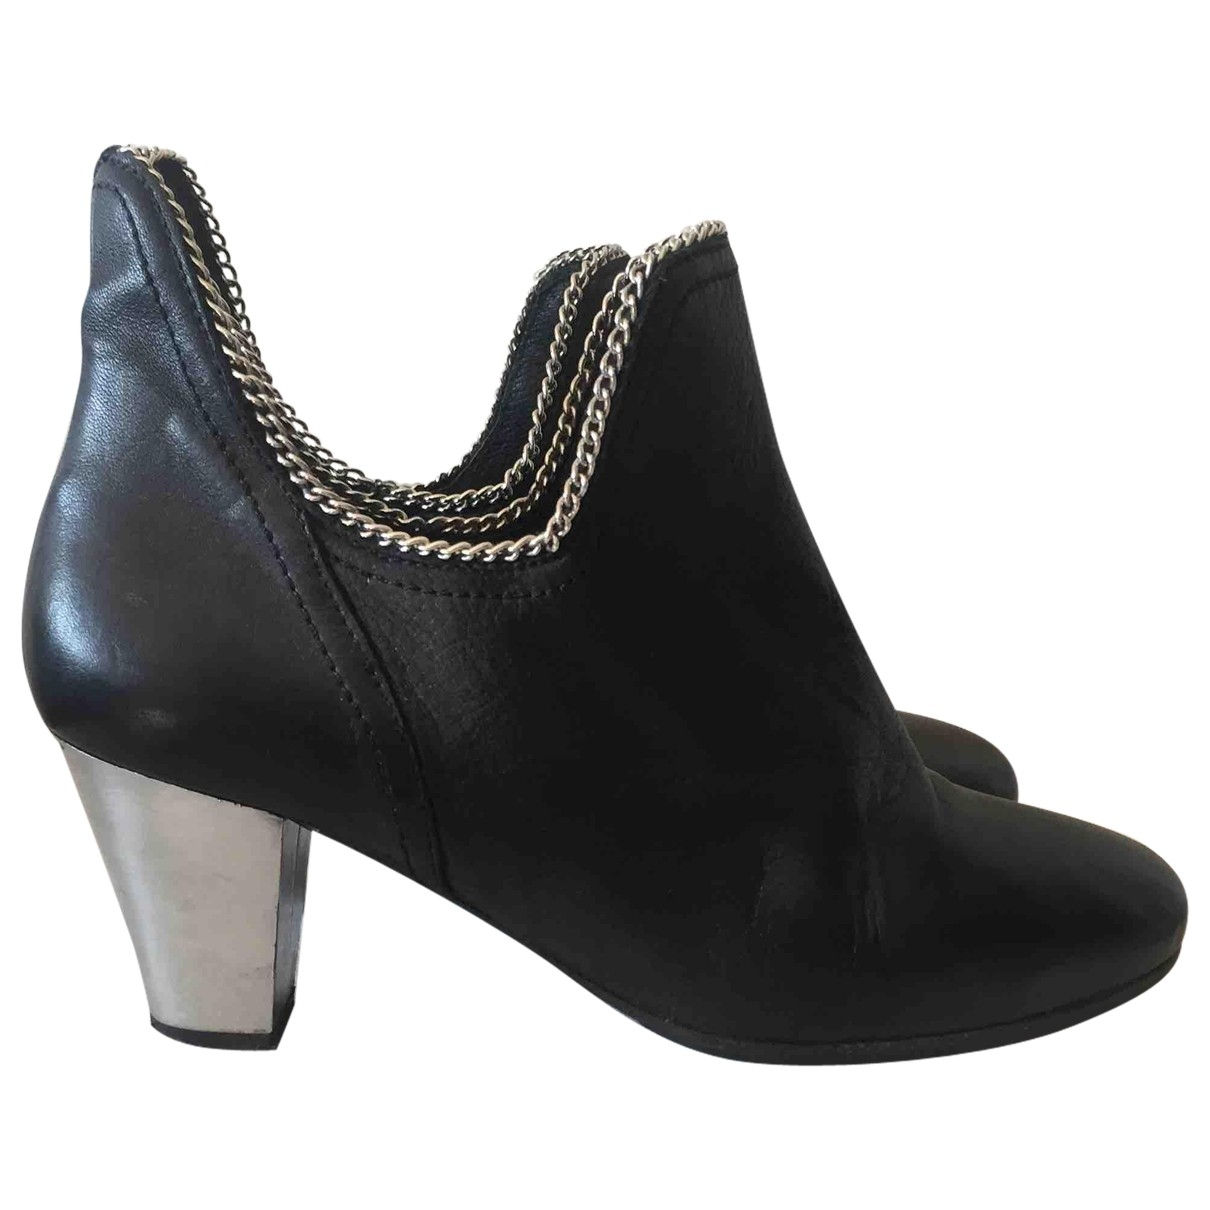 American Retro \N Black Leather Ankle boots for Women 39 EU